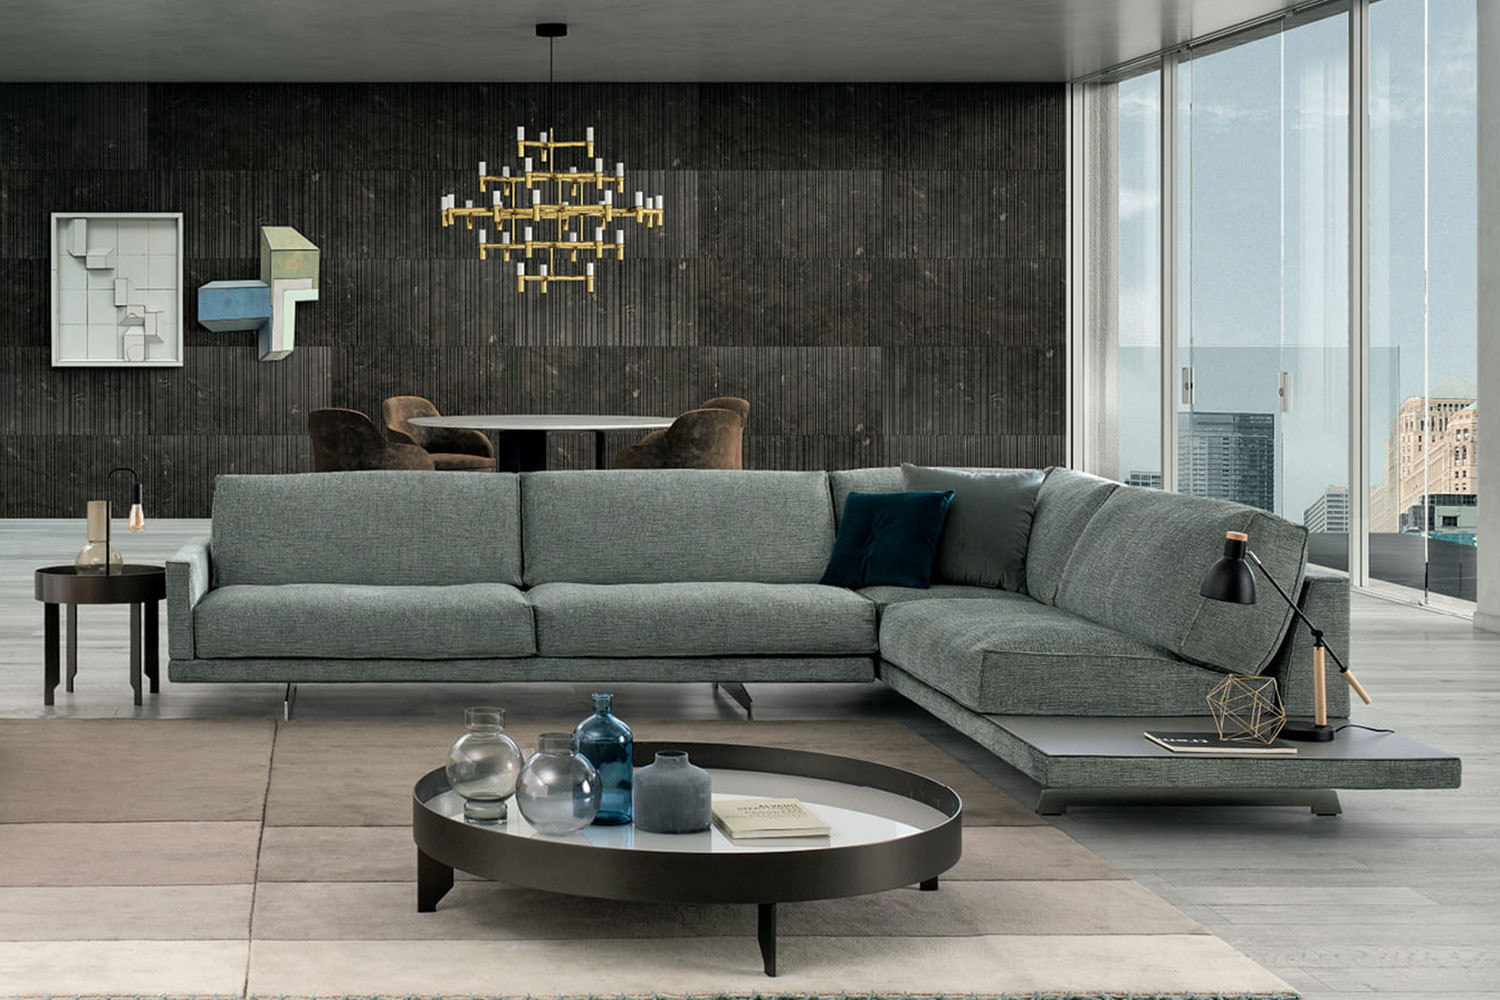 Sectional sofa with side table attached or with slim arms